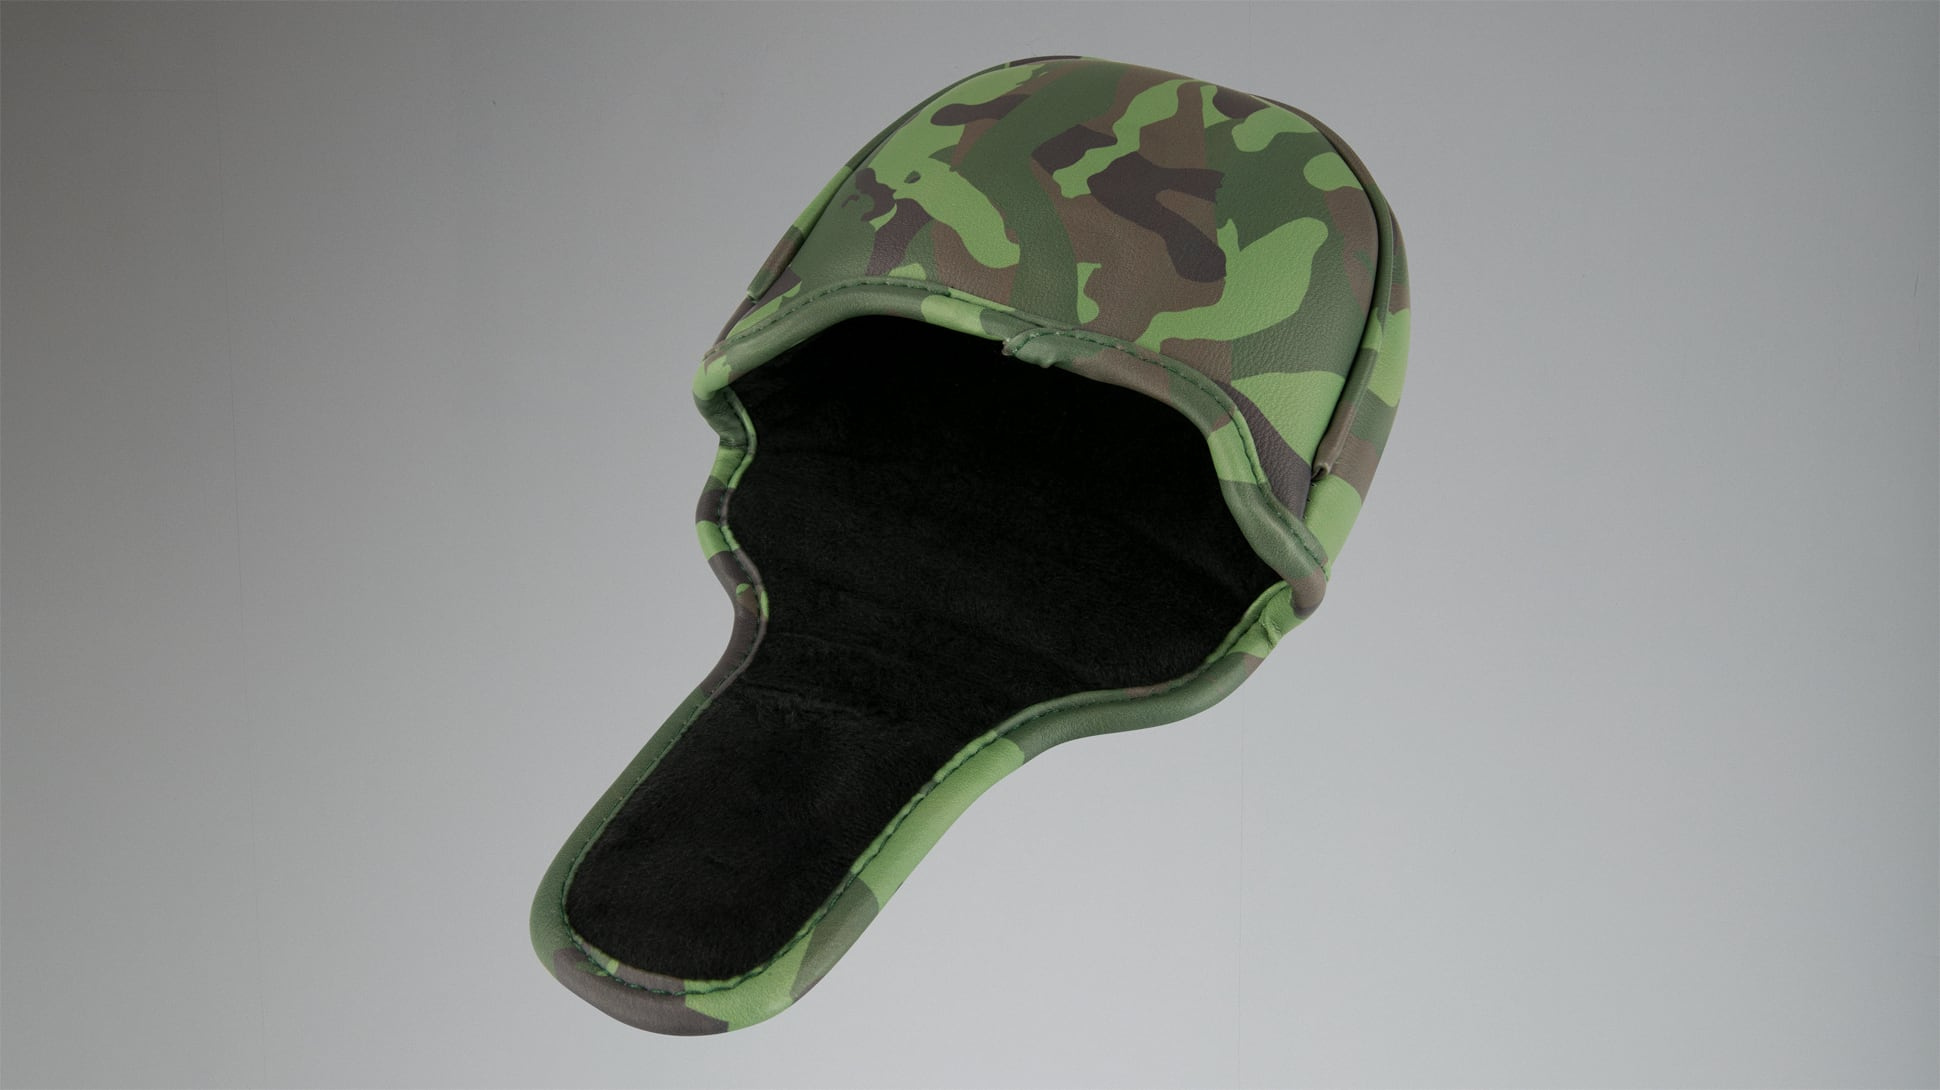 Jungle Camo Mallet Putter Headcover Image 3